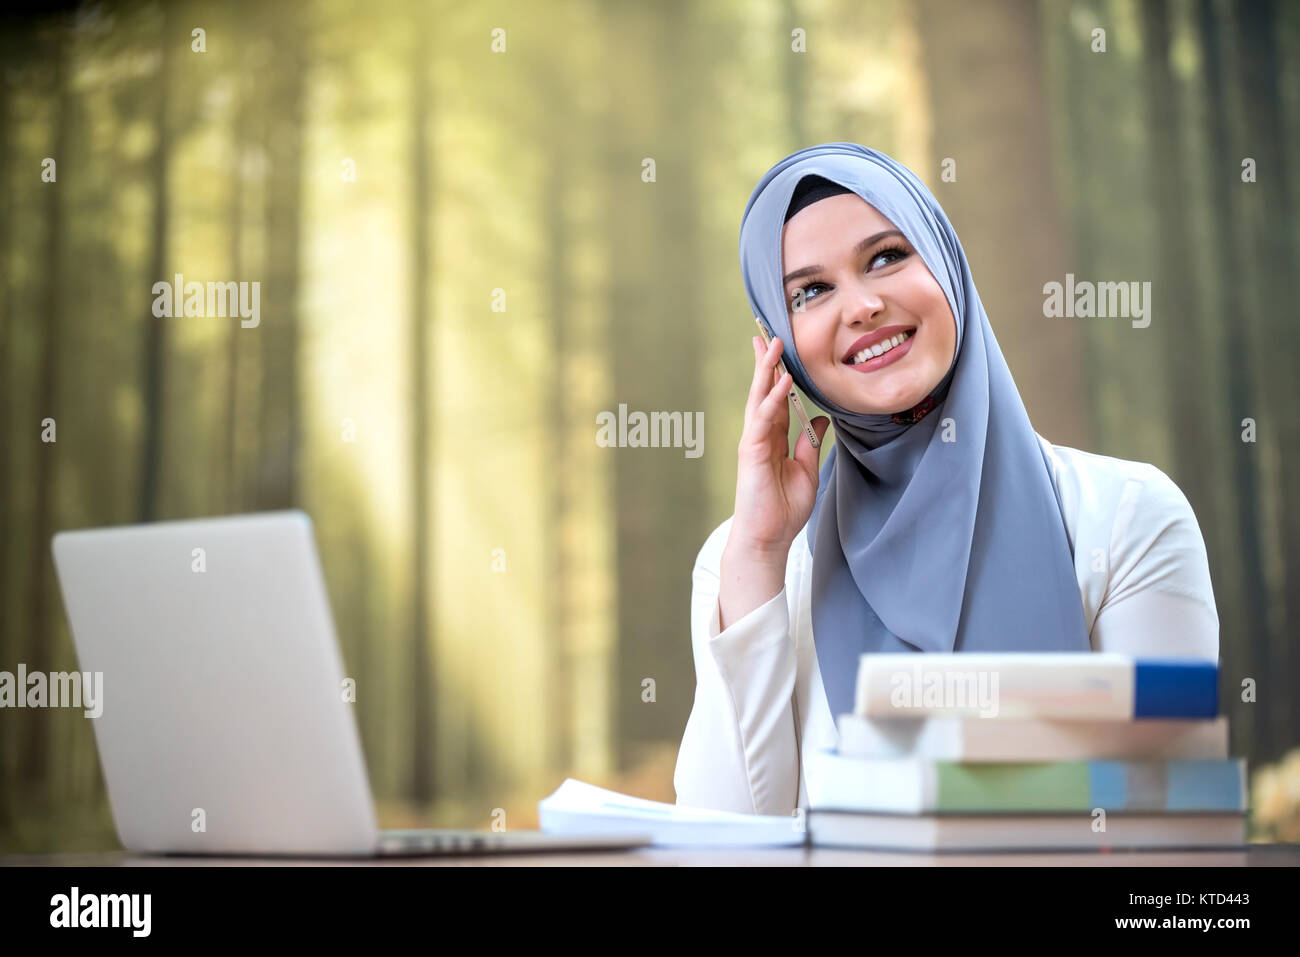 kiryat ekron muslim girl personals A long-standing policy dating to israel's early  the number of volunteers for military service—some christian arabs and even a few muslim  kiryat malachi:.